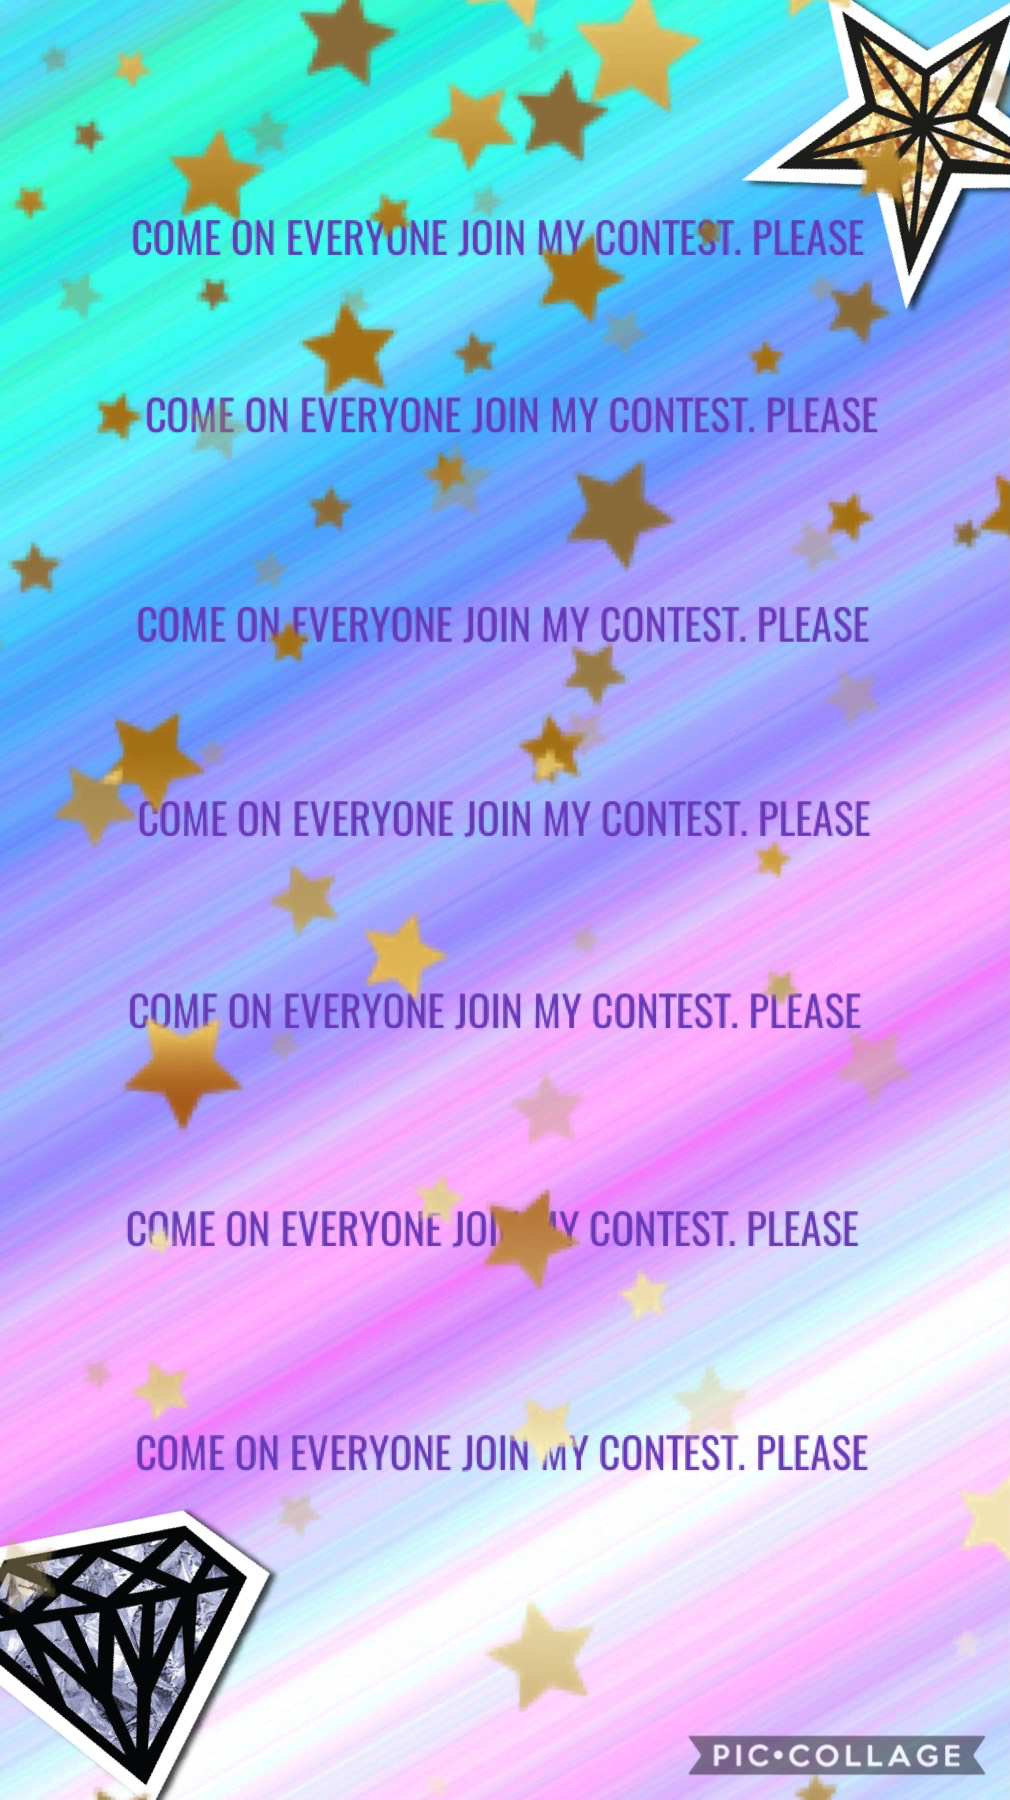 Come on everyone join my contest please⭐️⭐️⭐️⭐️